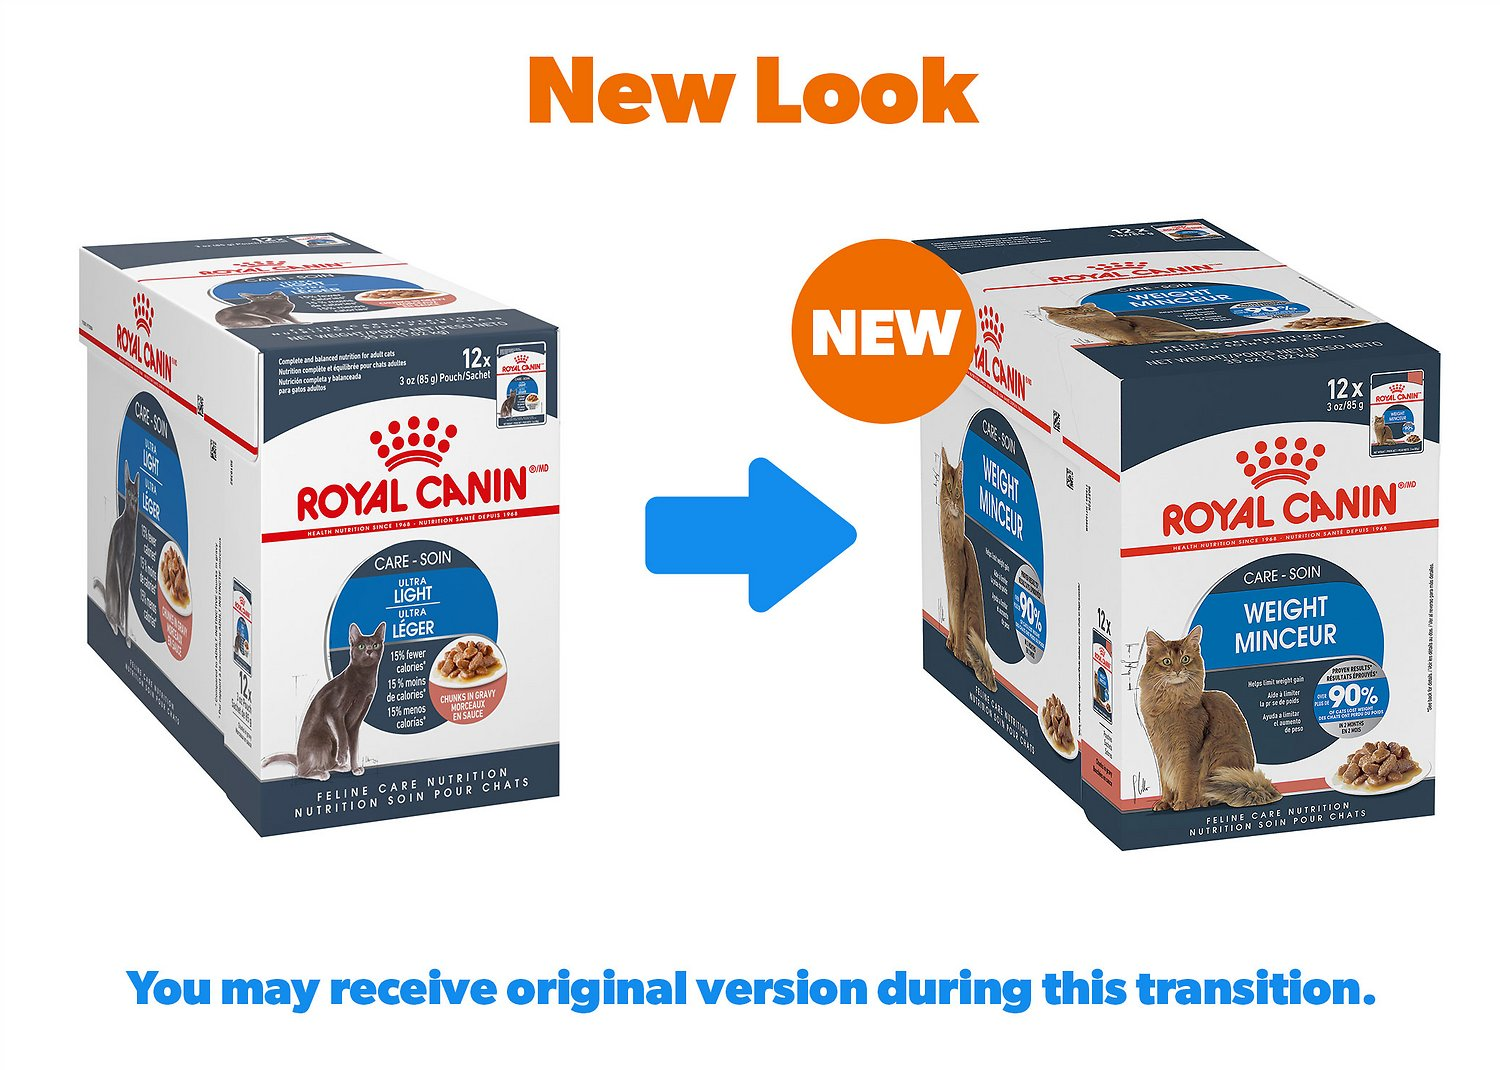 Royal Canin Ultra Light Chunks In Gravy Adult Cat Food